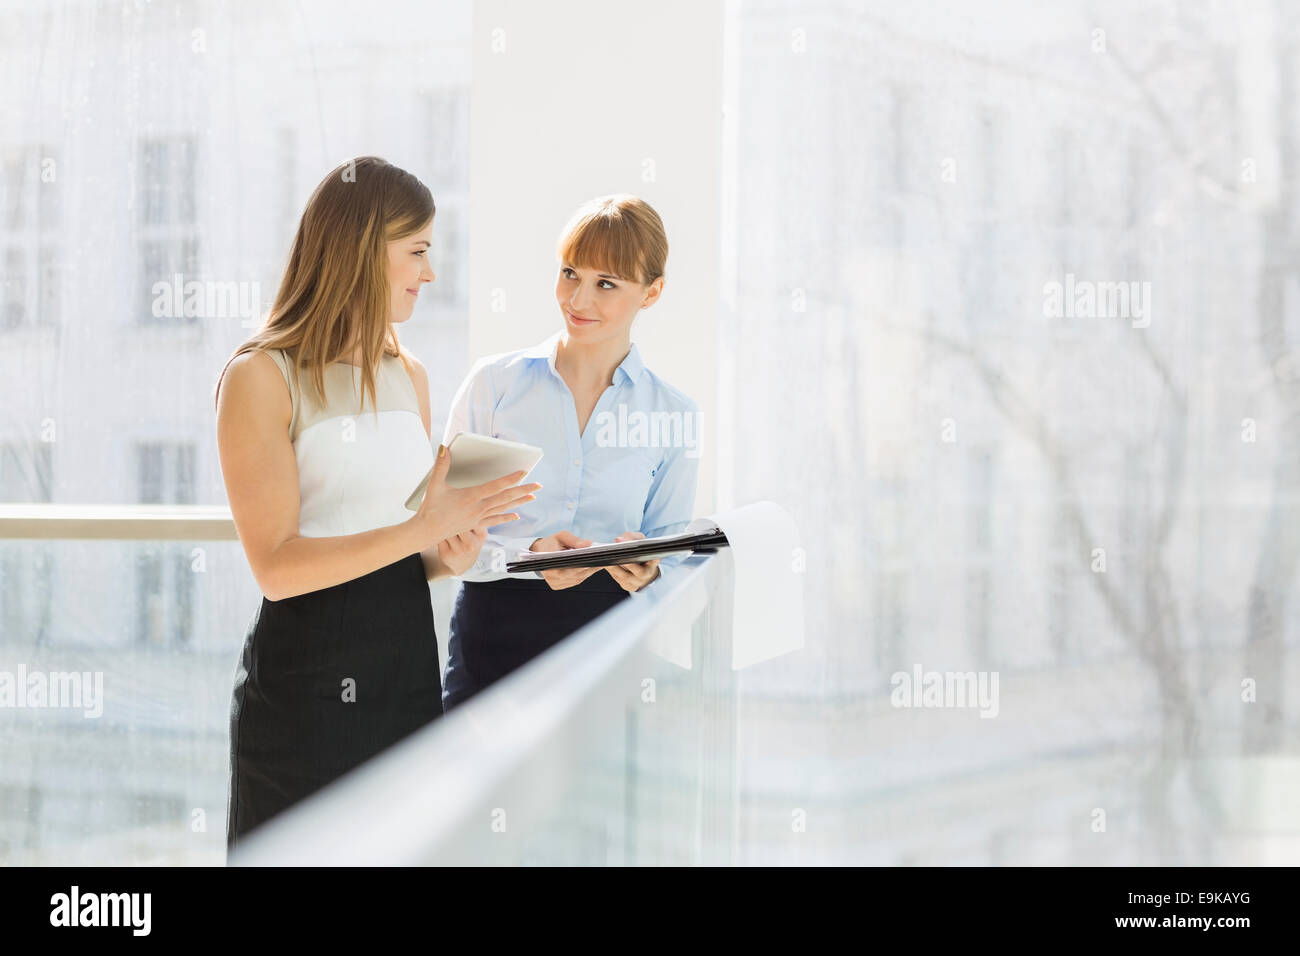 Businesswomen discussing over tablet PC while standing by railing in office - Stock Image